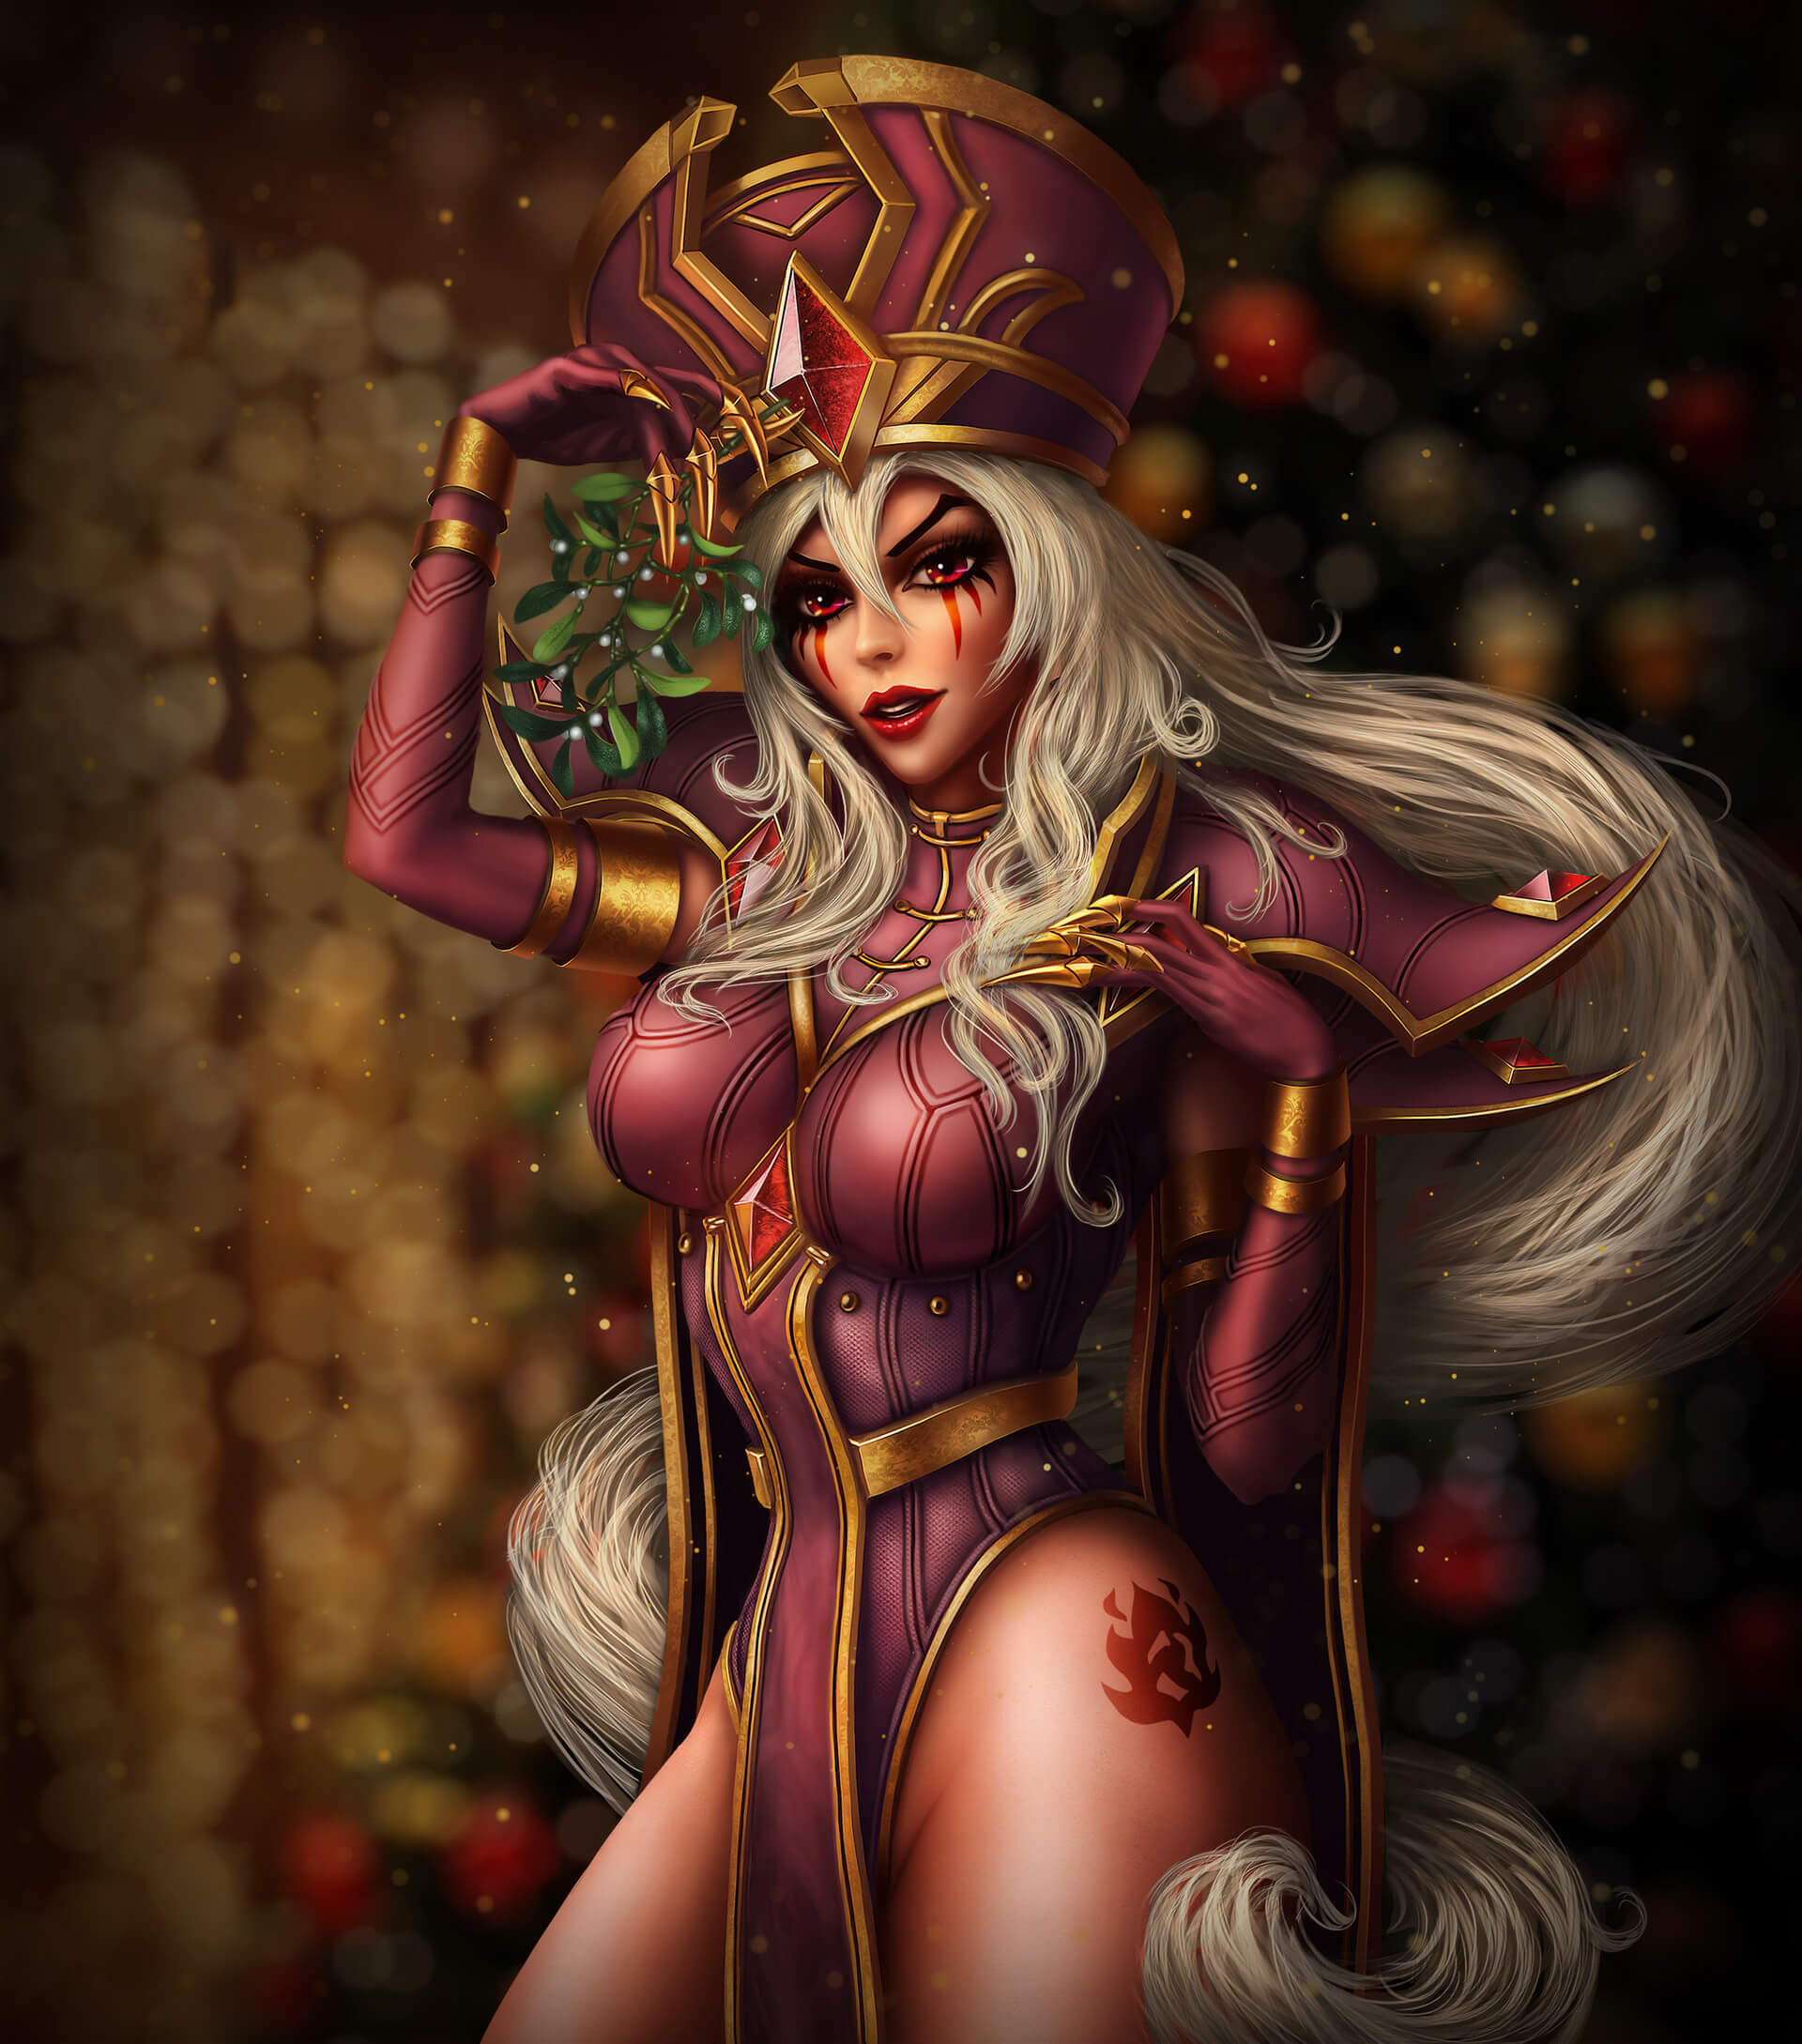 sally whitemane too hot